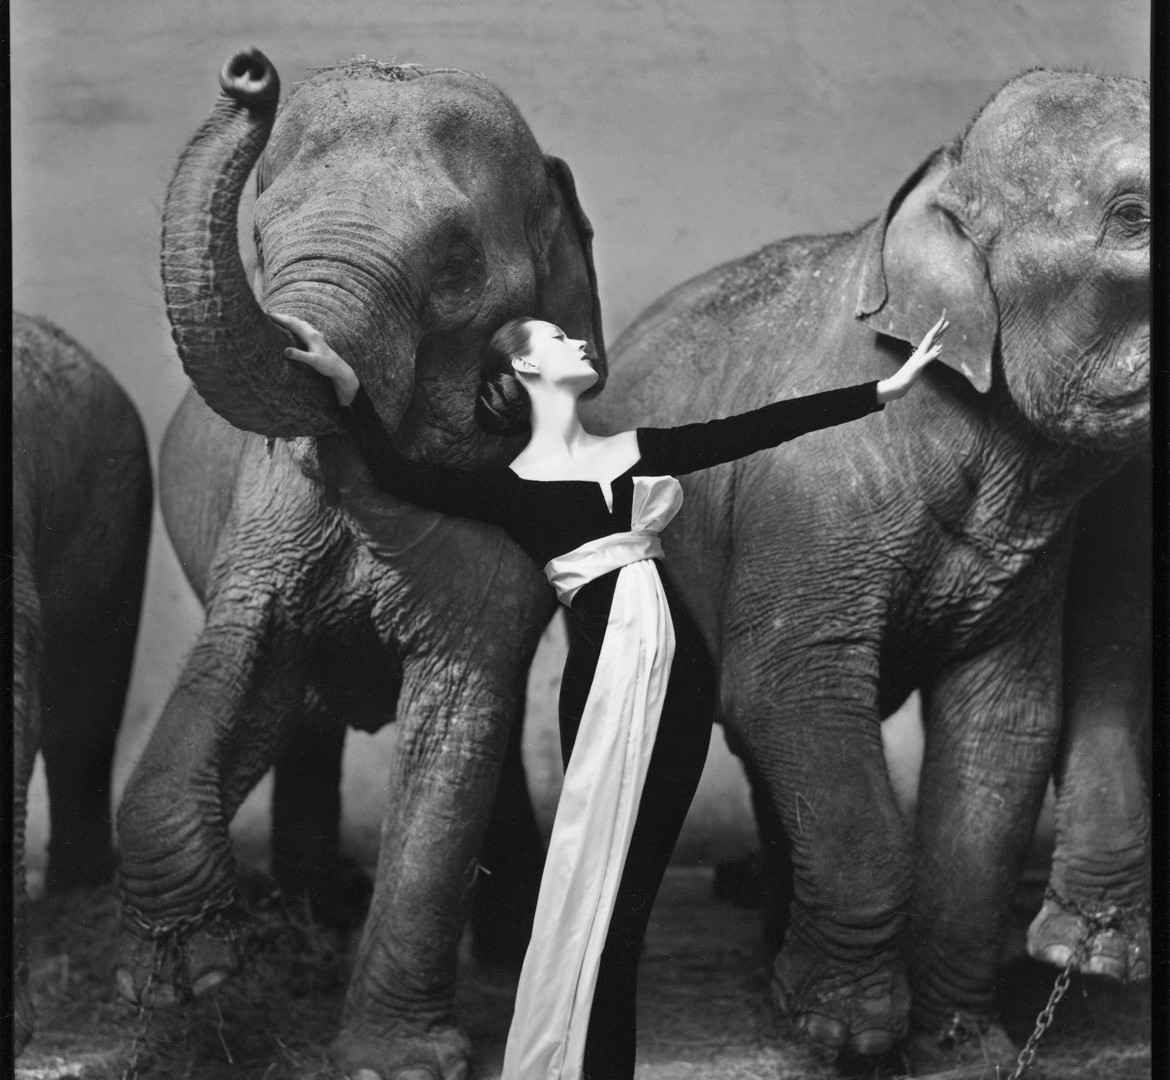 Richard Avedon, Dovima with elephants, evening dress by Dior, Cirque d'Hiver, Paris, August 1955